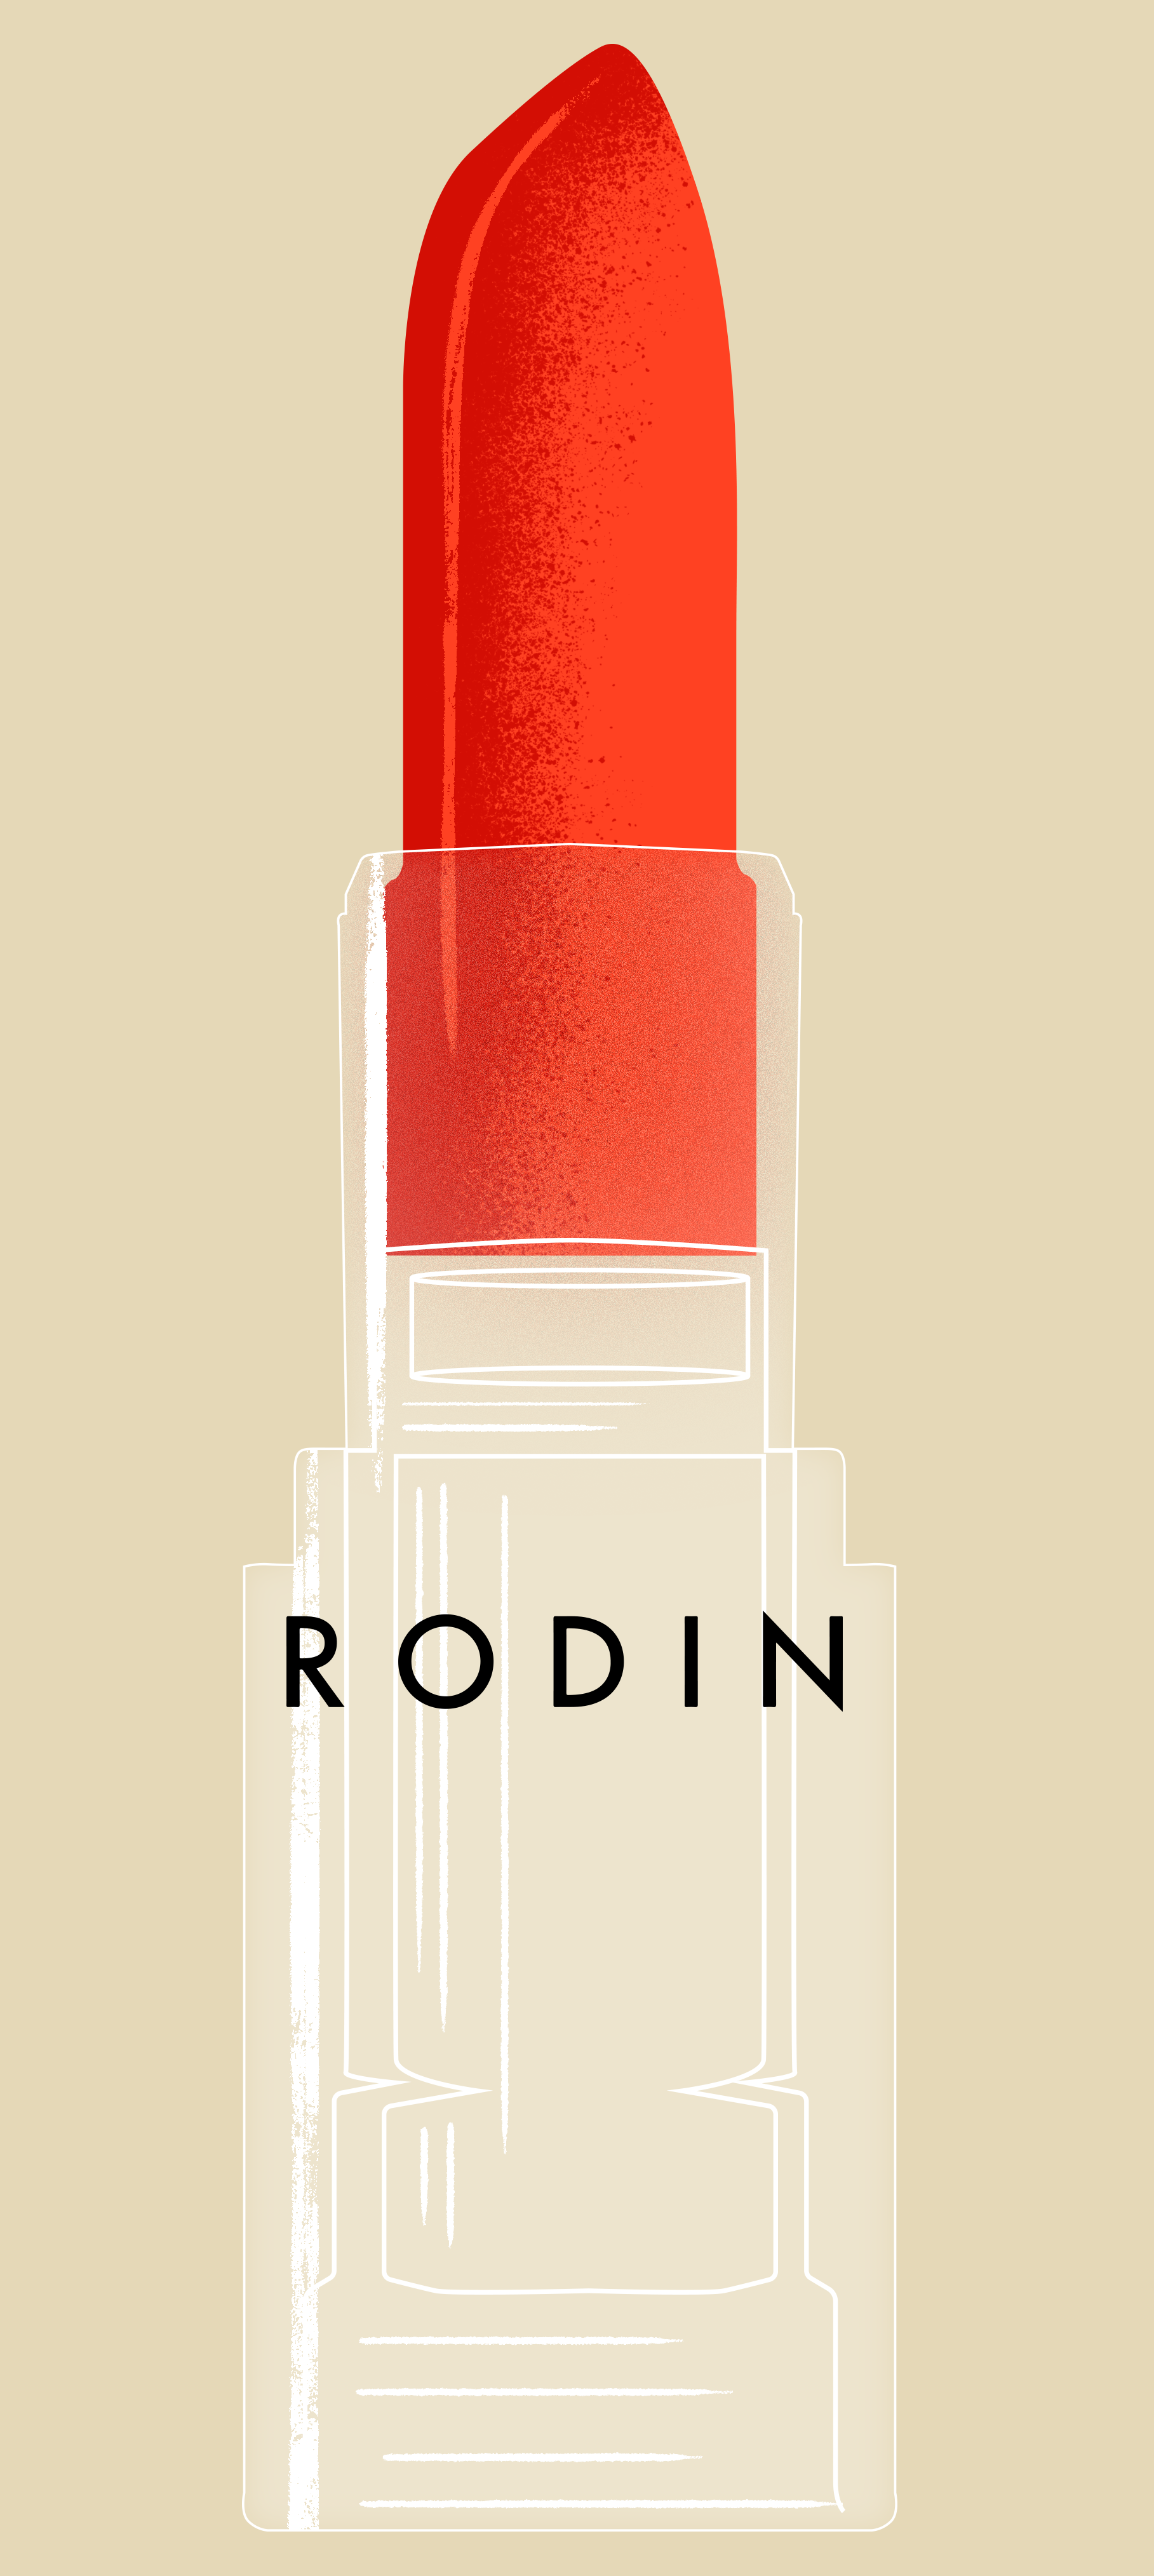 WH_01_06_rodin.png